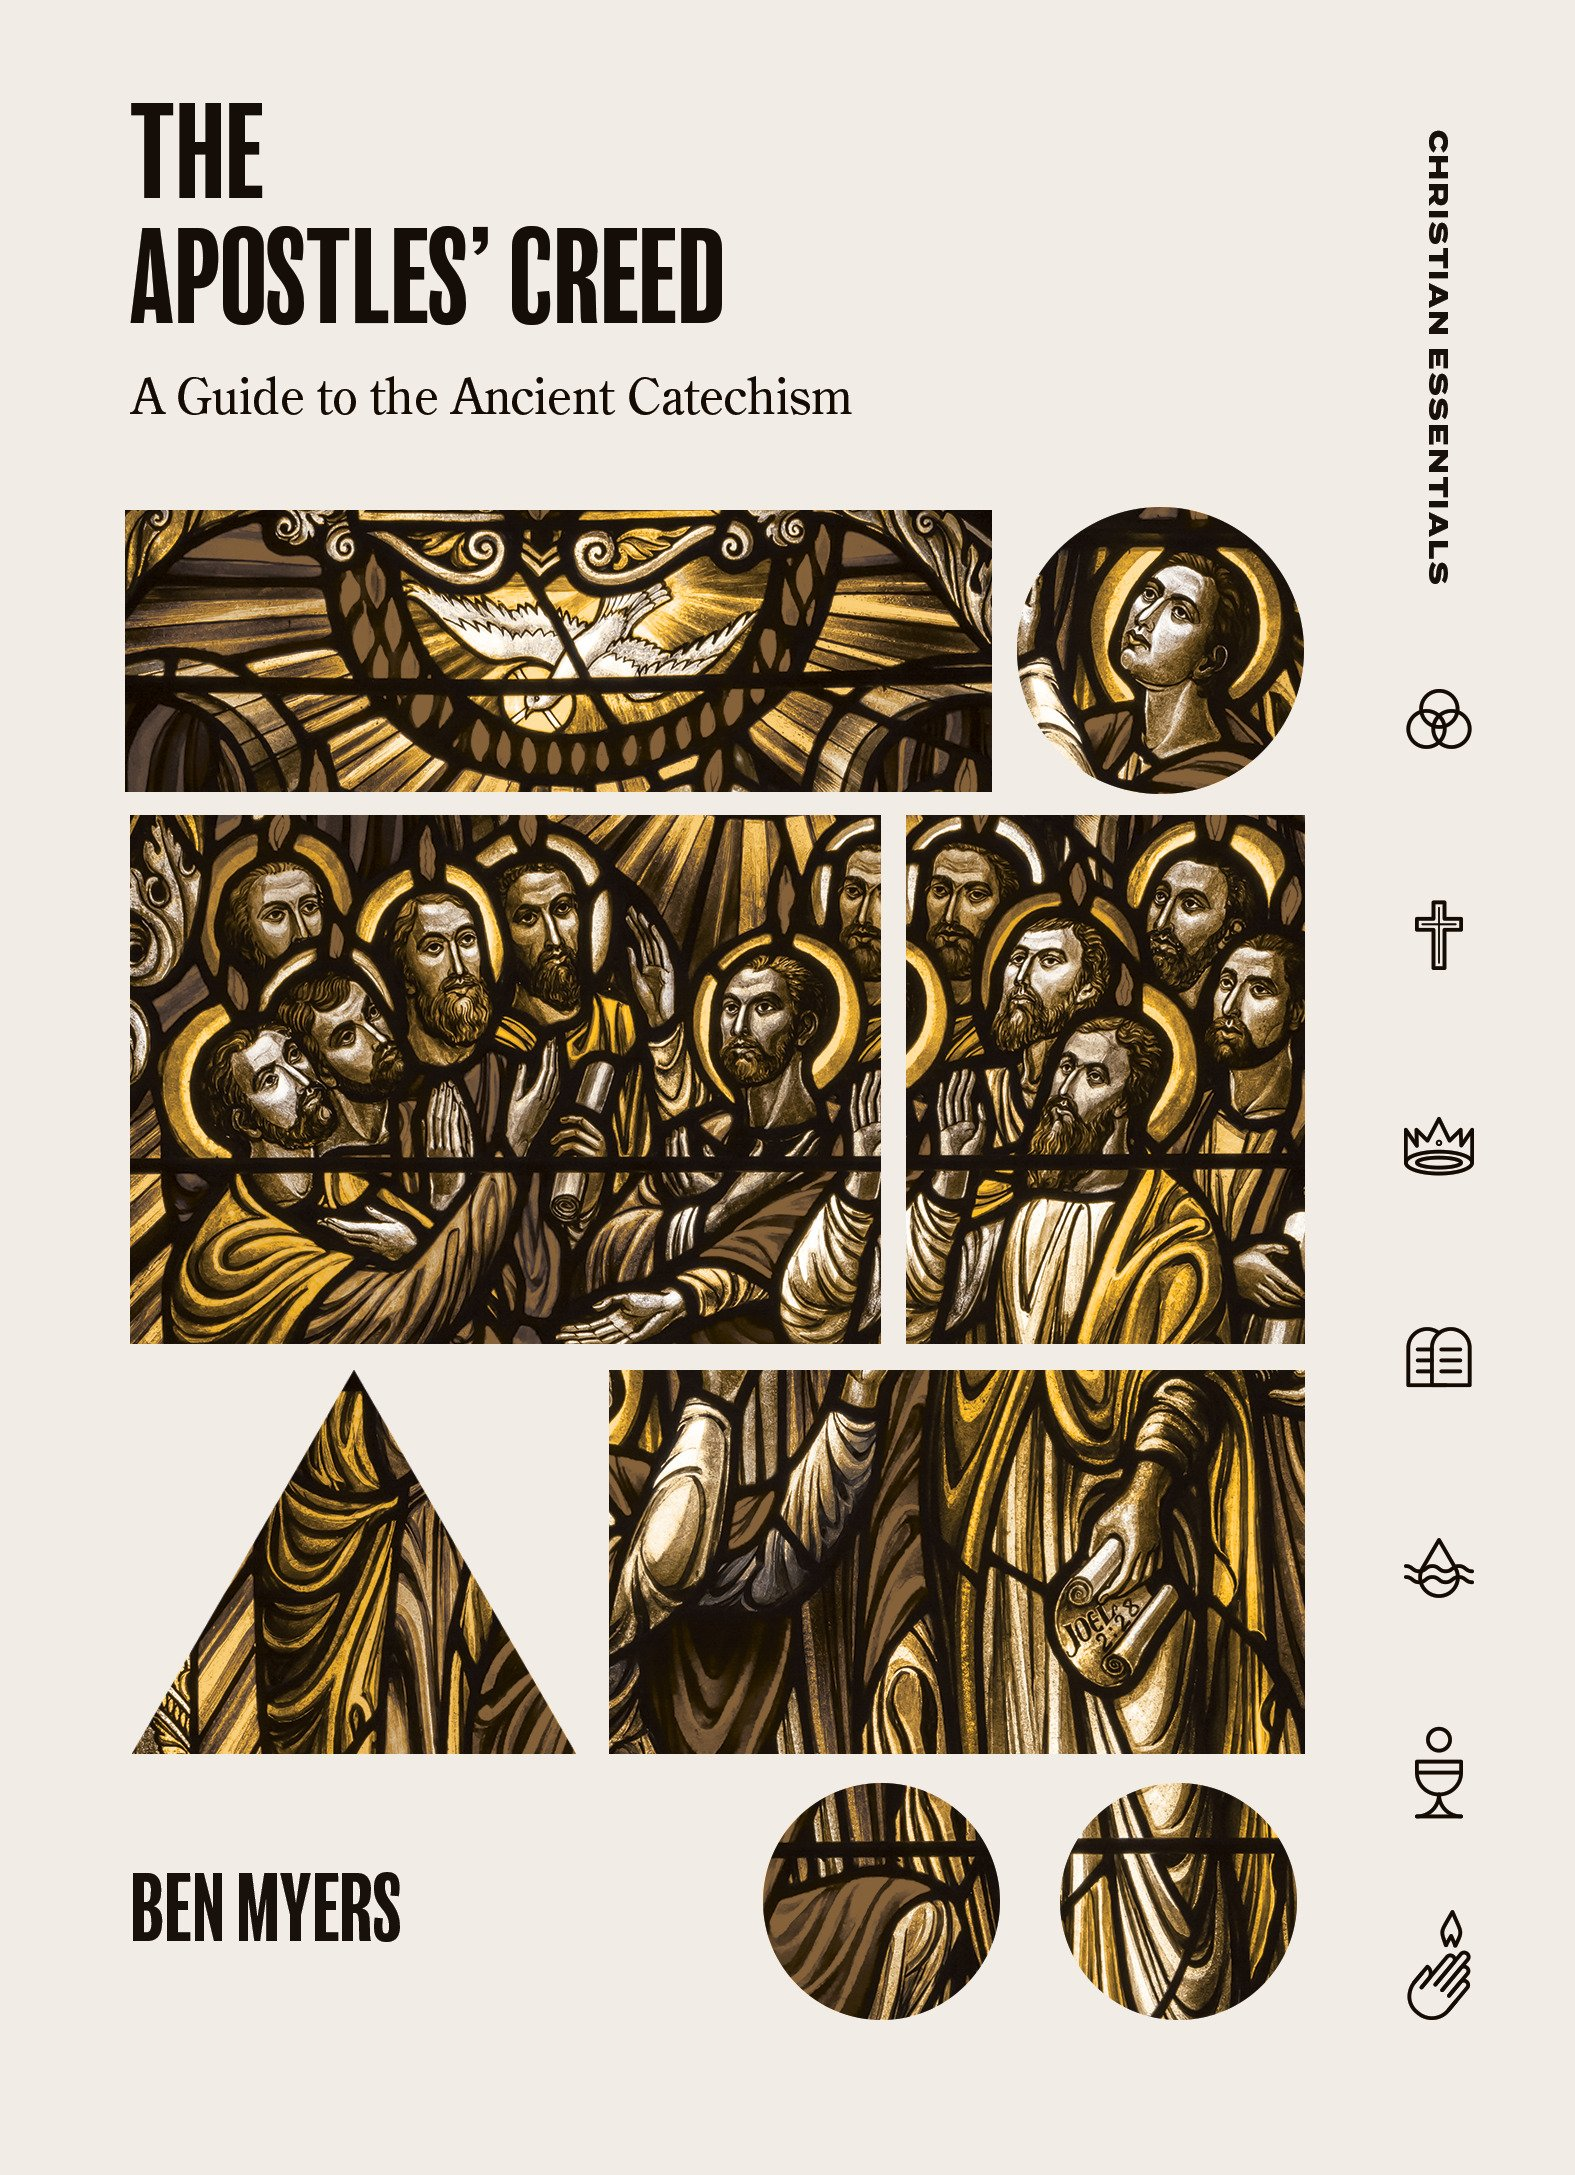 Book Review: Ben Myers, The Apostles' Creed: A Guide to the Ancient Catechism